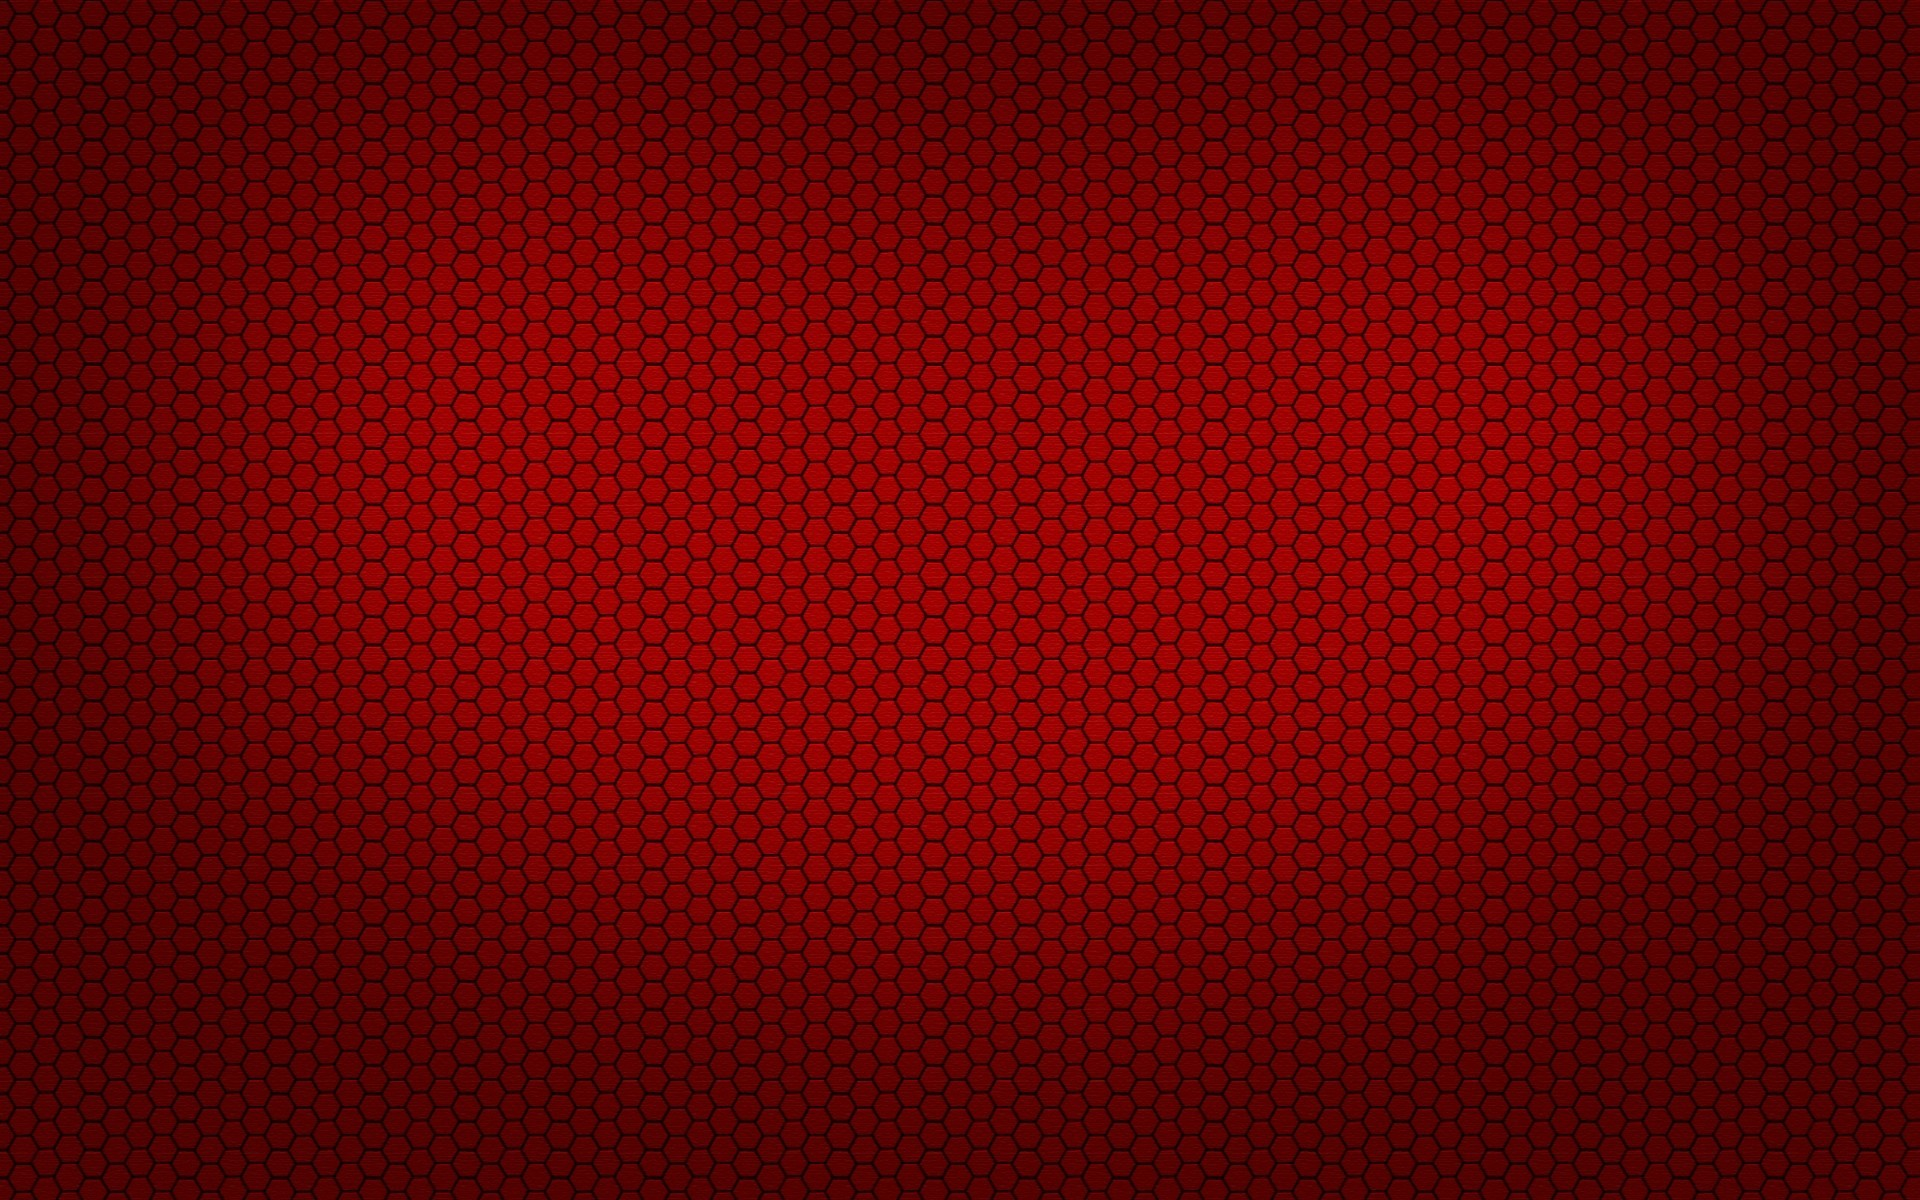 dark red background wallpaper 66 images